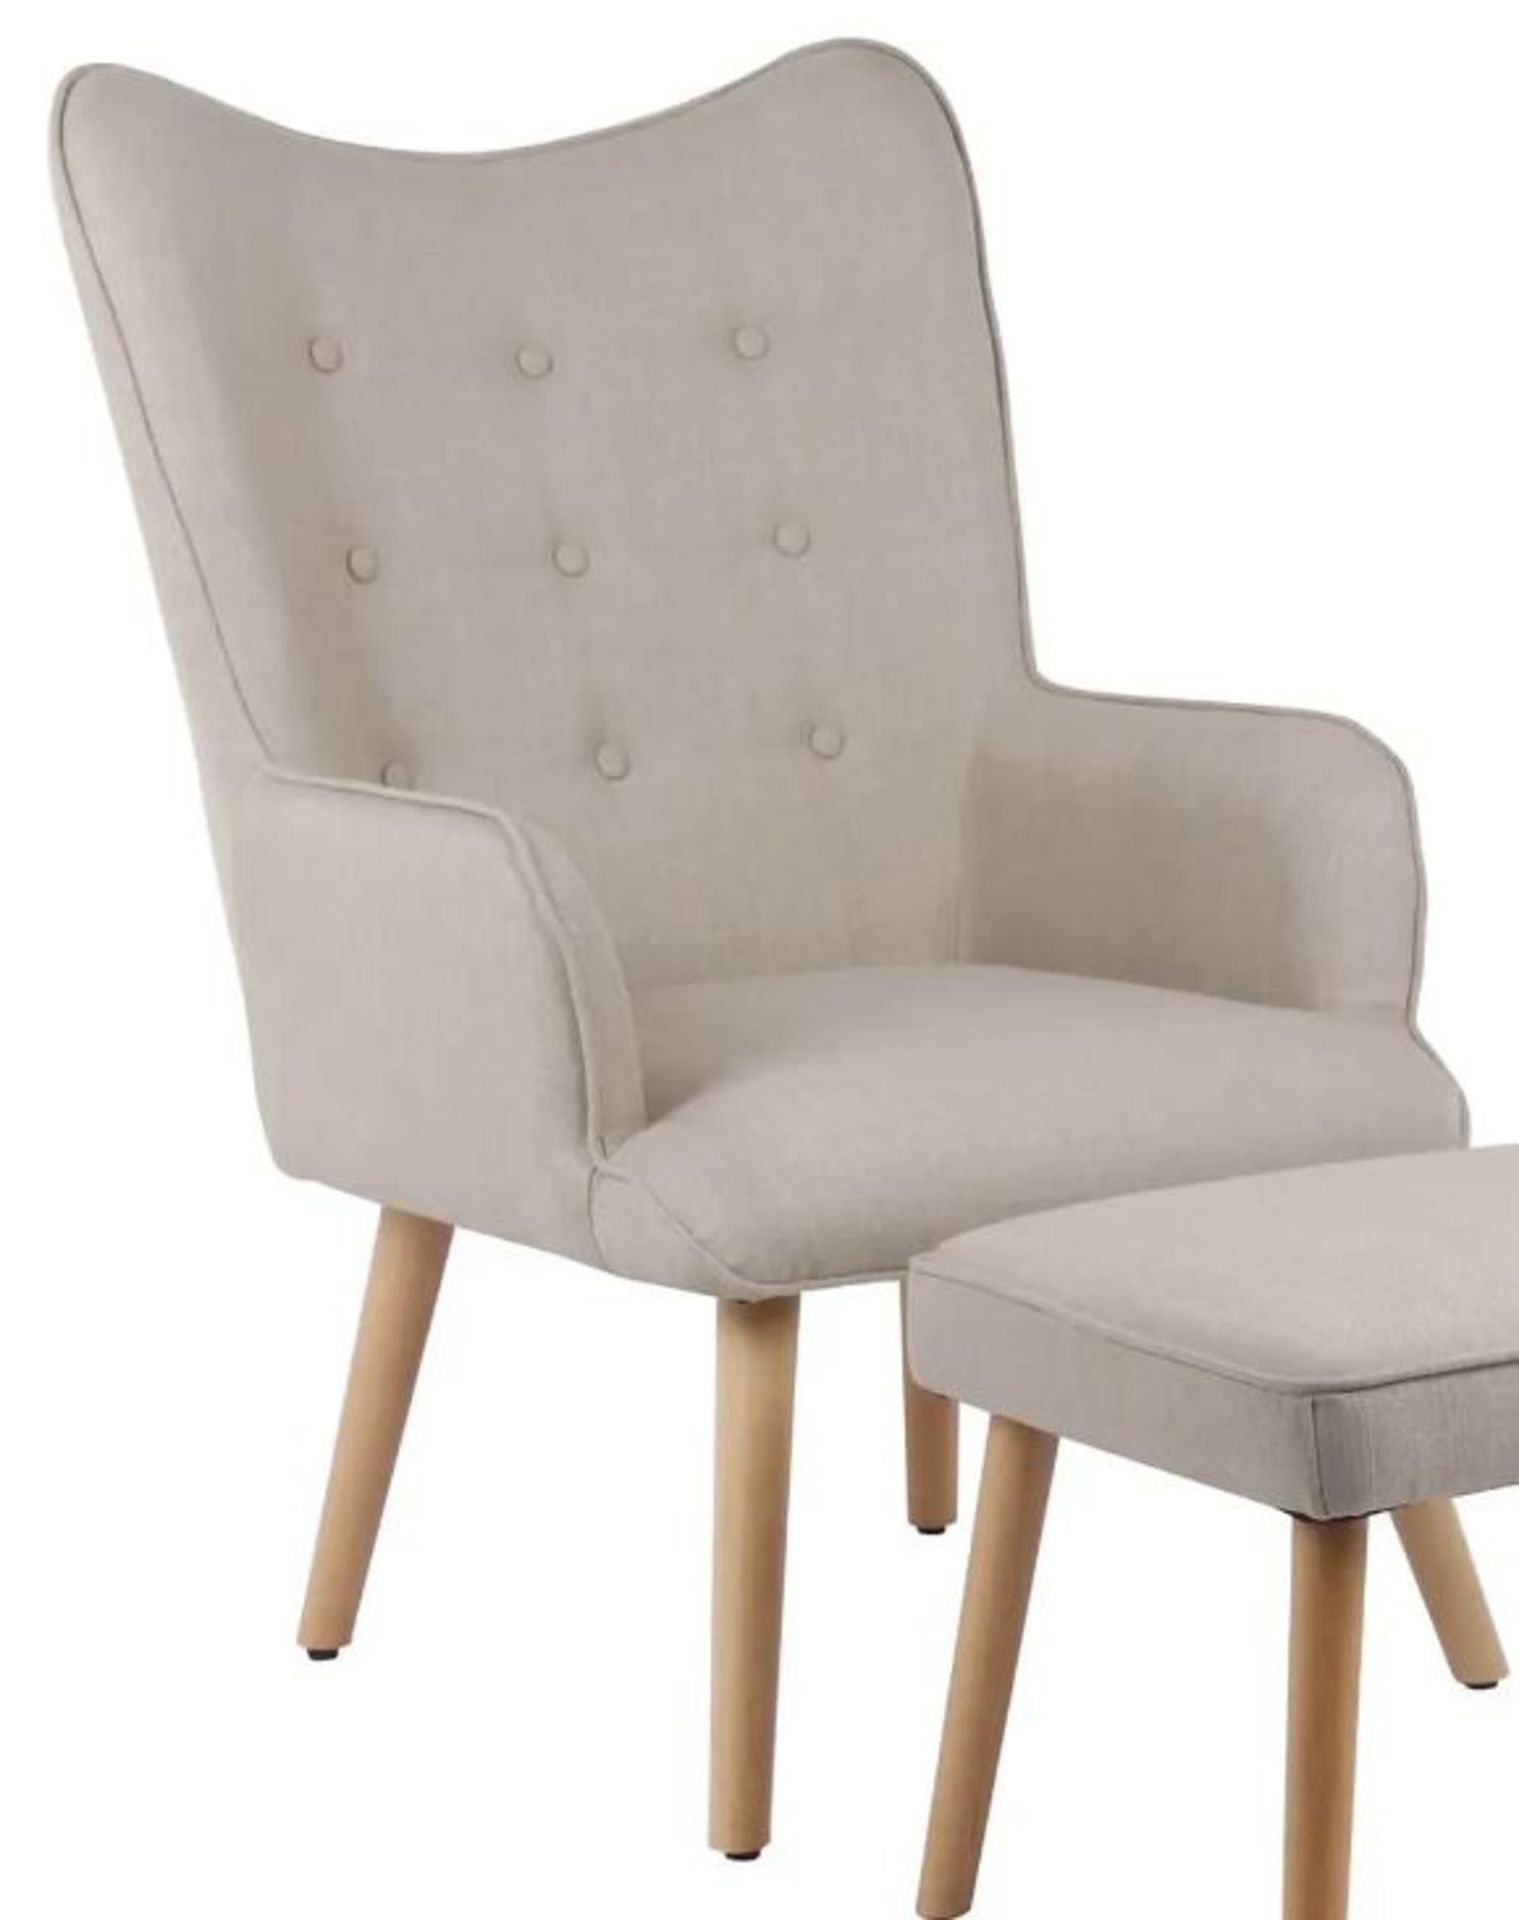 (2I) 2x Leon Beige Lounge Chairs (Only 1x Leg Set With This Lot). Both Units Appear Clean, Unused.